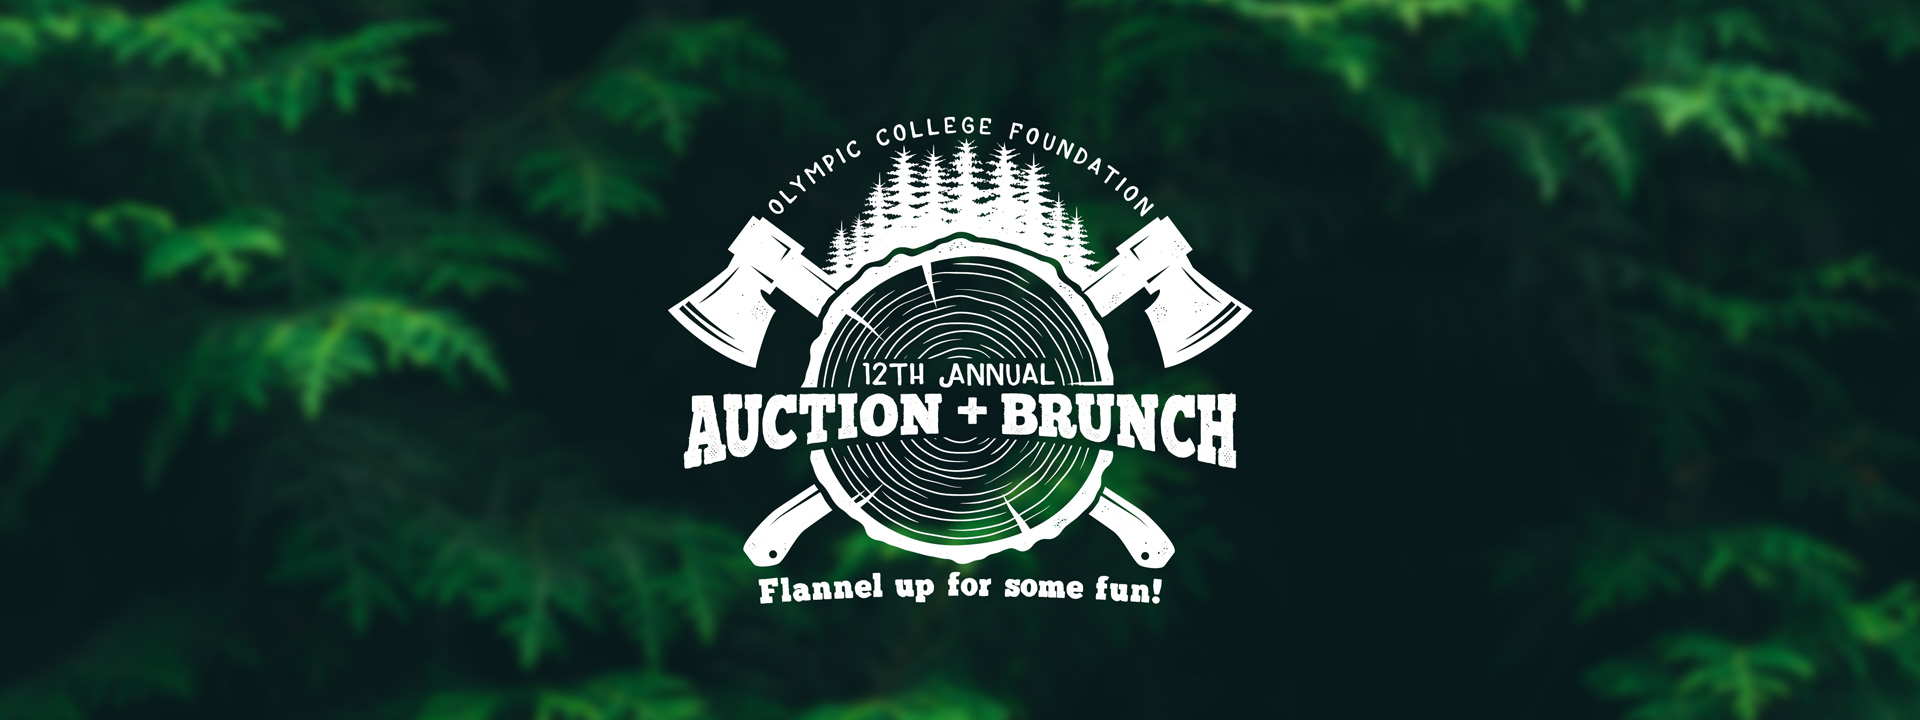 12th Annual Auction and Brunch